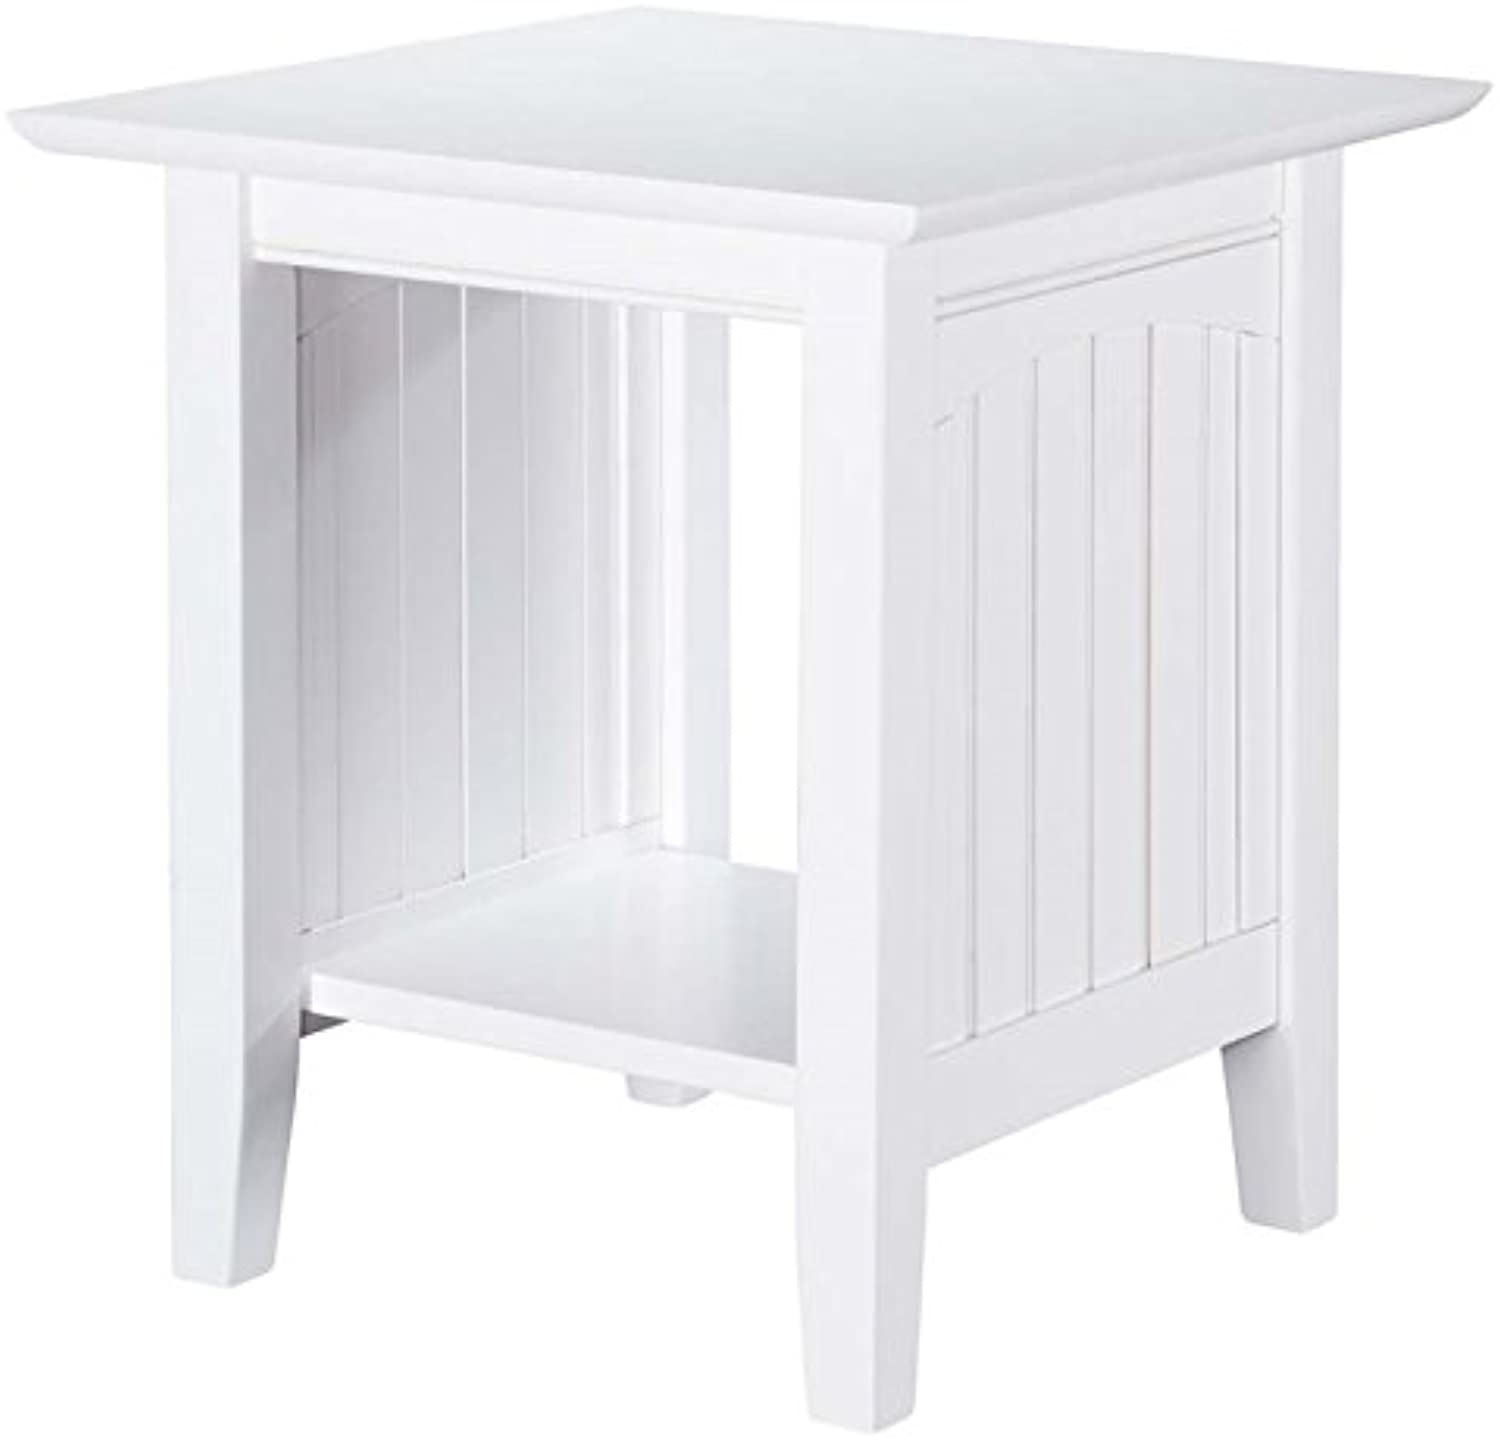 Leo & Lacey End Table in White